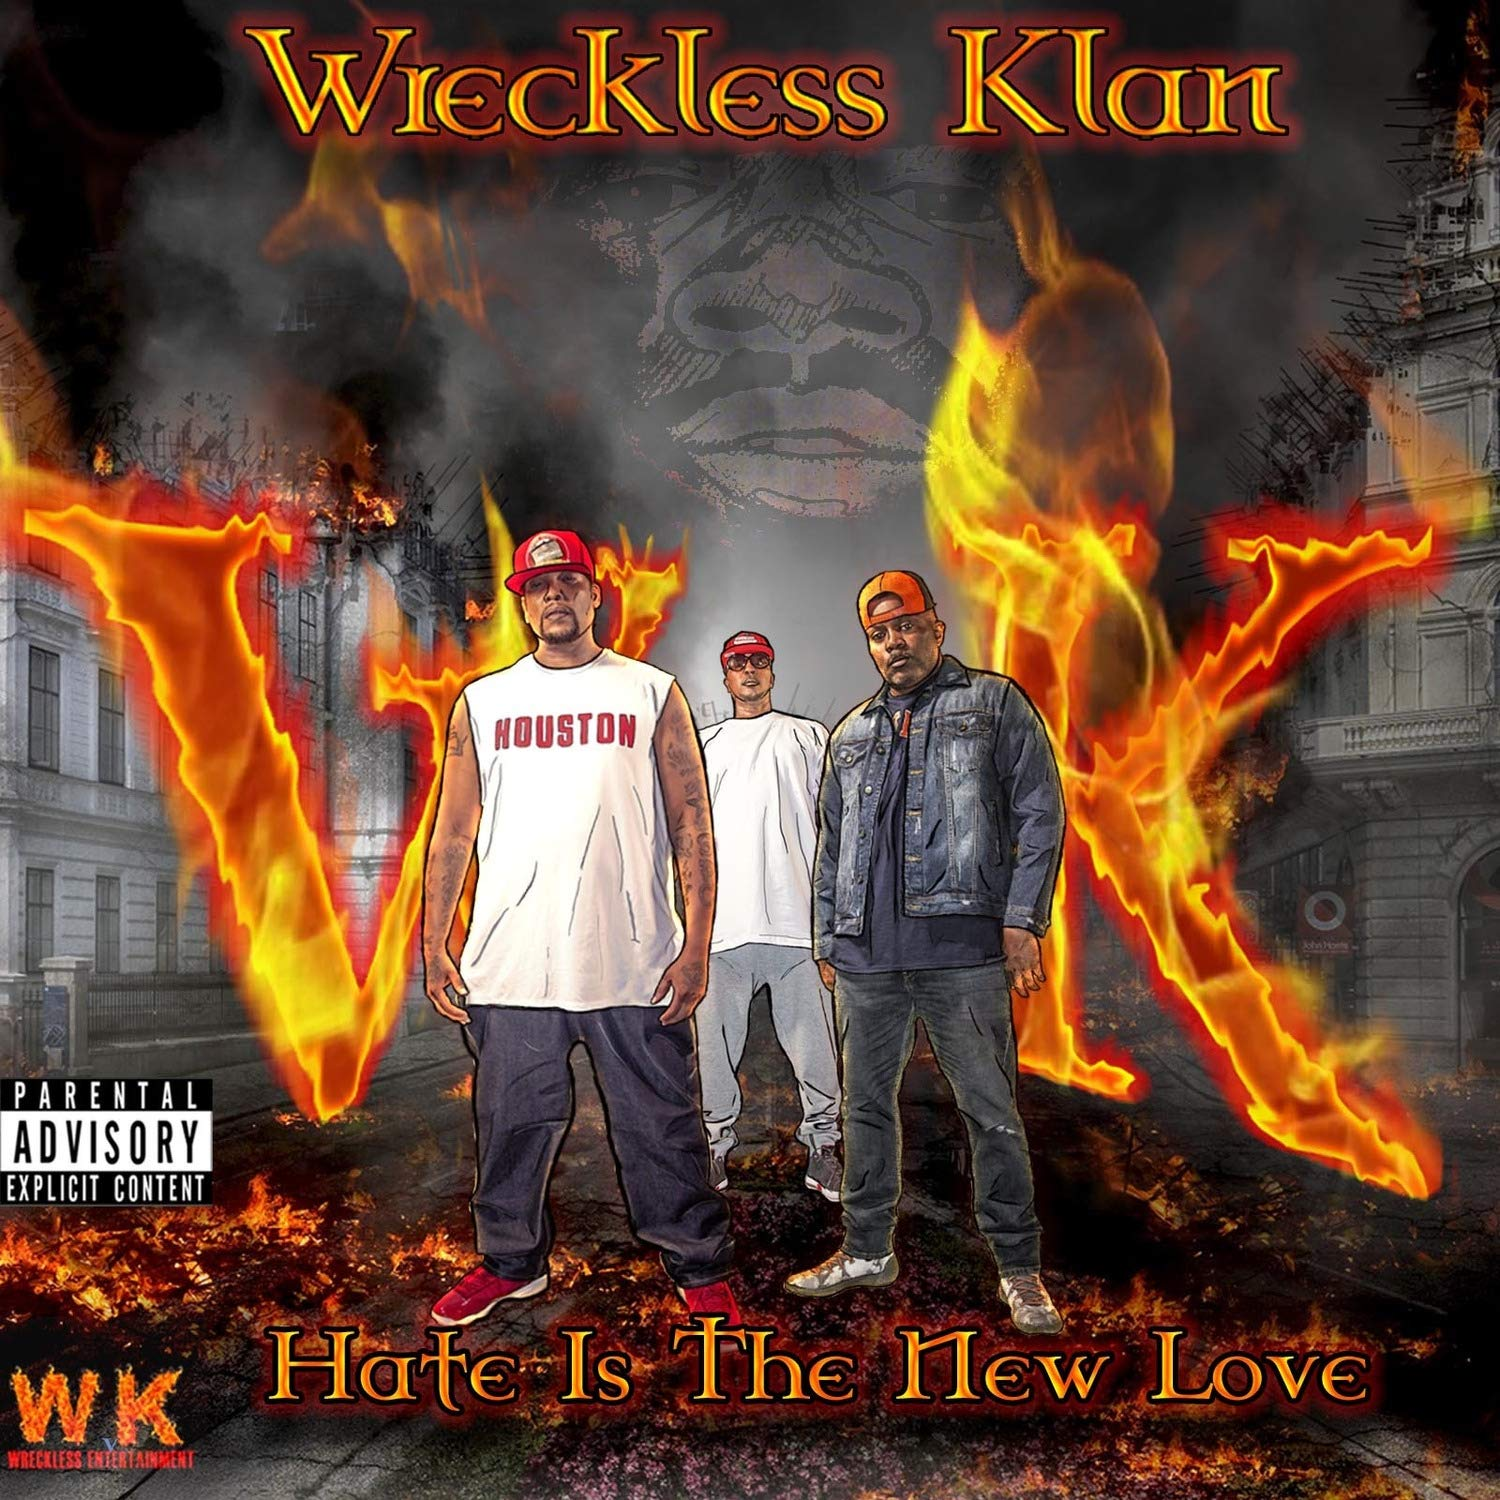 Wreckless Klan - Hate Is The New Love (2020) [FLAC] Download